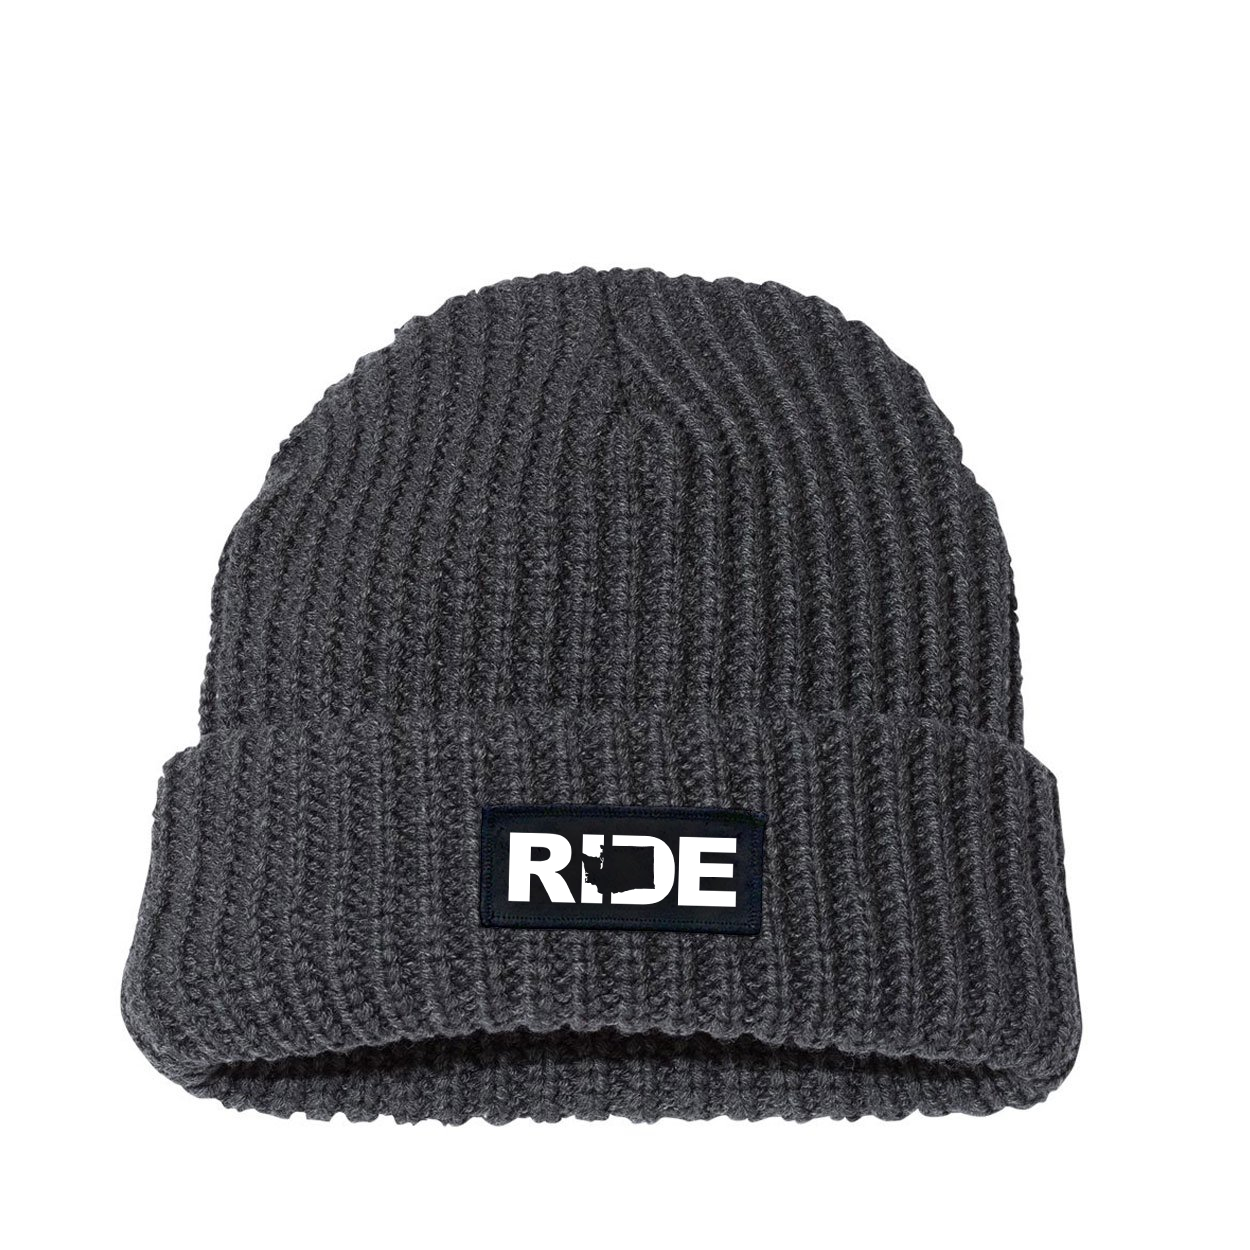 Ride Washington Night Out Woven Patch Roll Up Jumbo Chunky Knit Beanie Charcoal (White Logo)